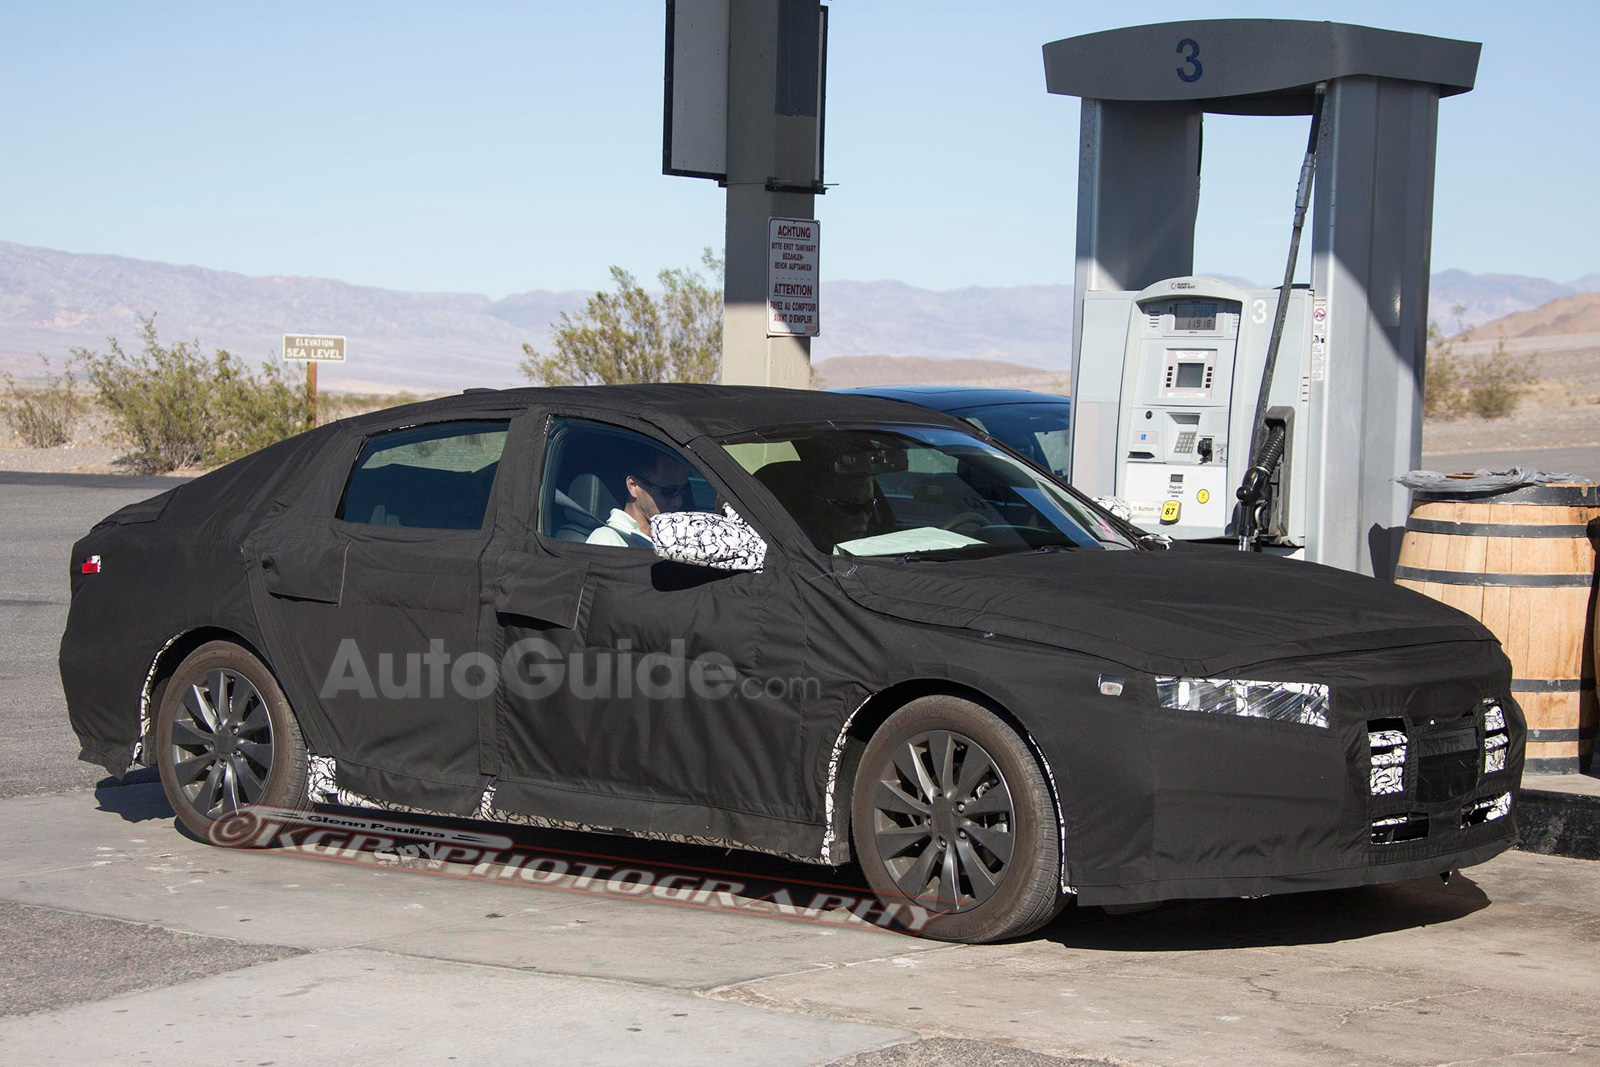 Bigger 2018 Honda Accord Spied With Sleeker Profile Autoguide Com News